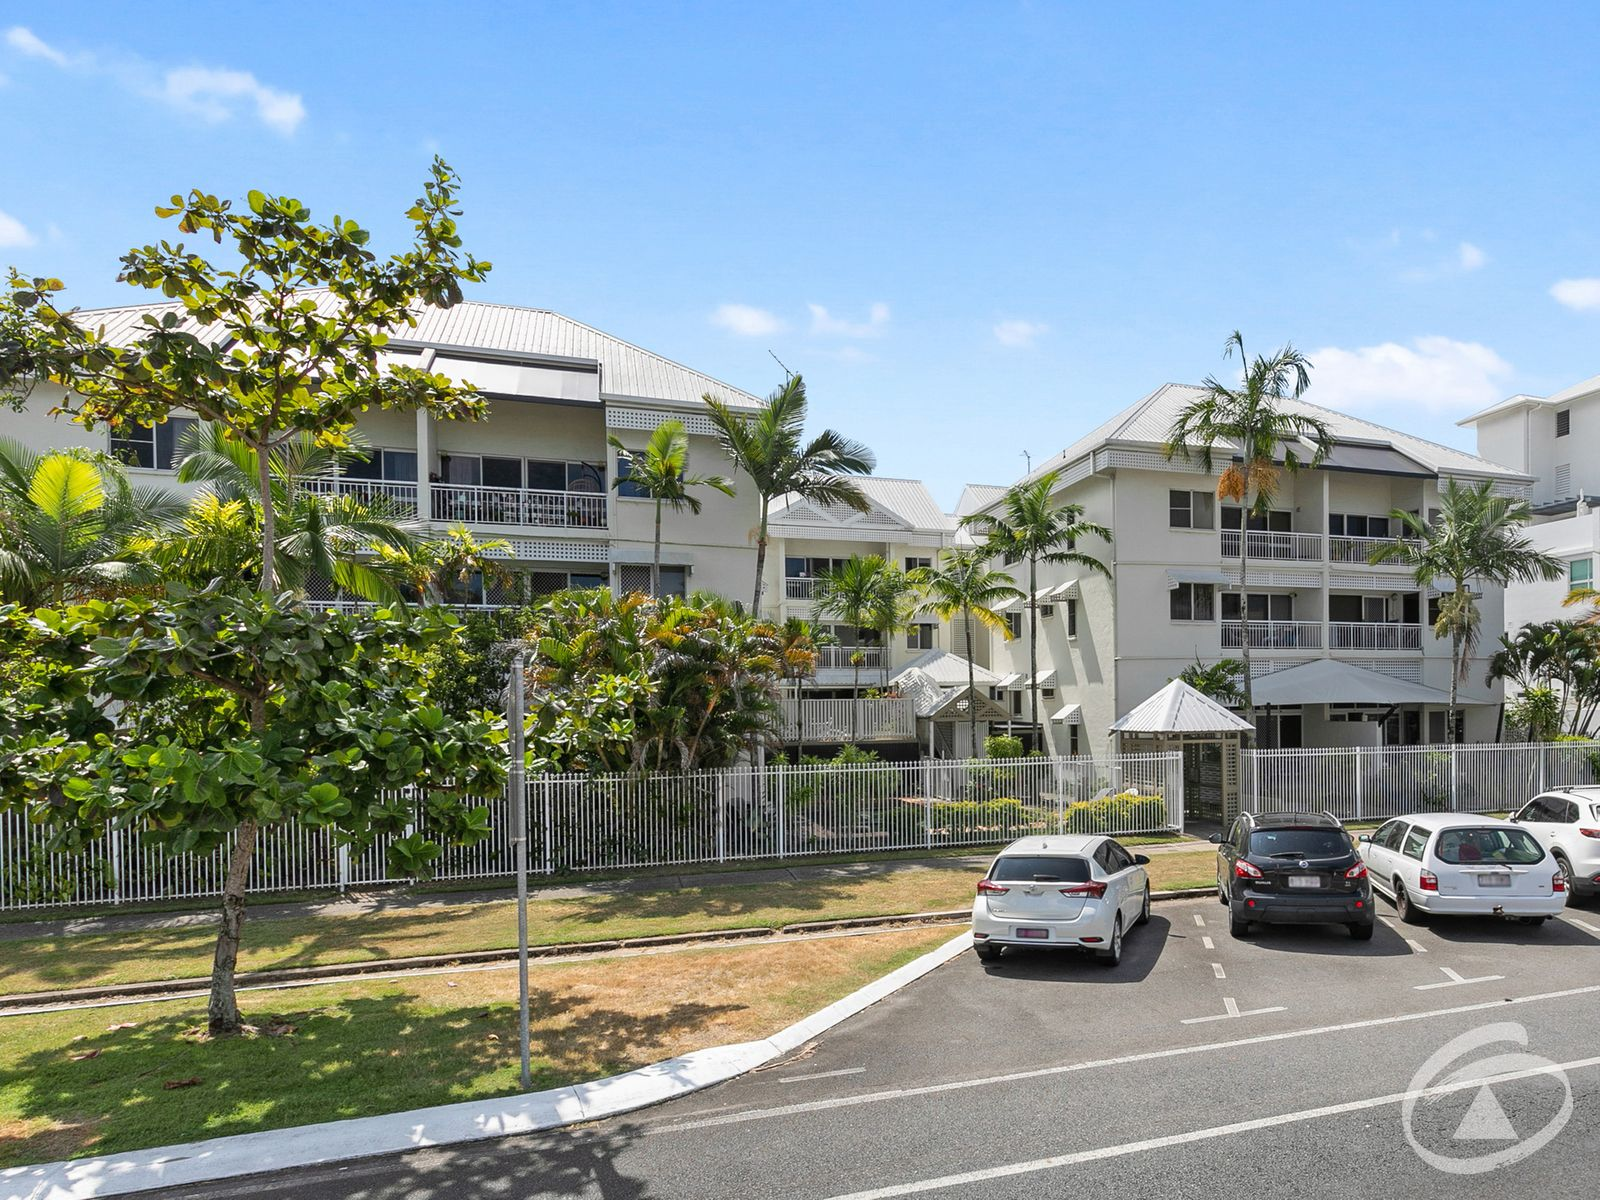 11/14 Upward Street, Cairns North, QLD 4870